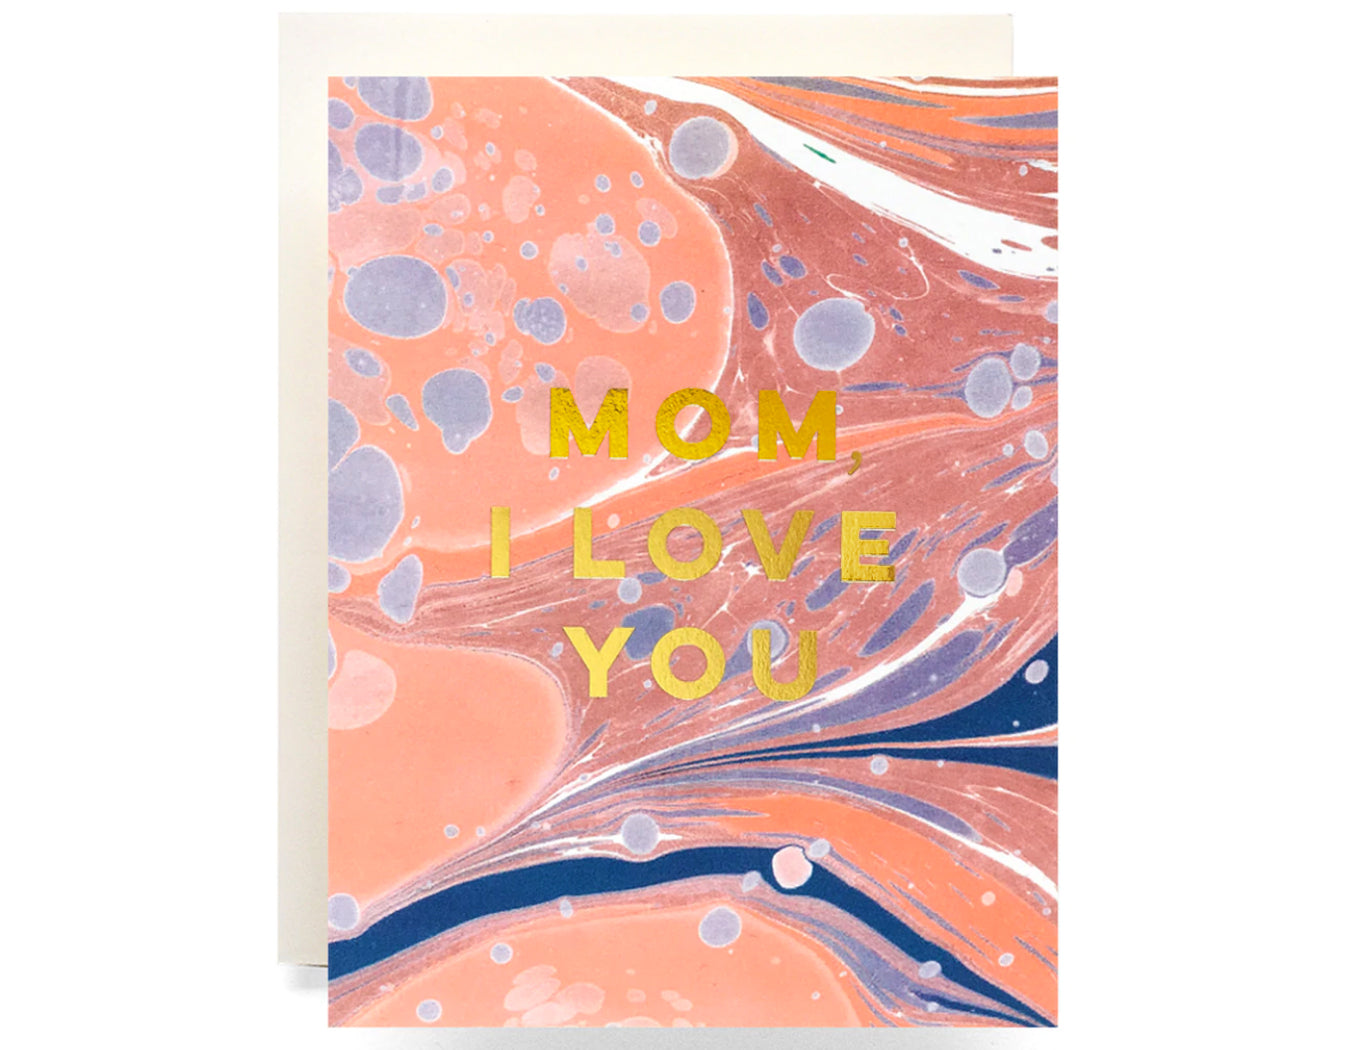 pink marbling background gold foil text reads mom i love you